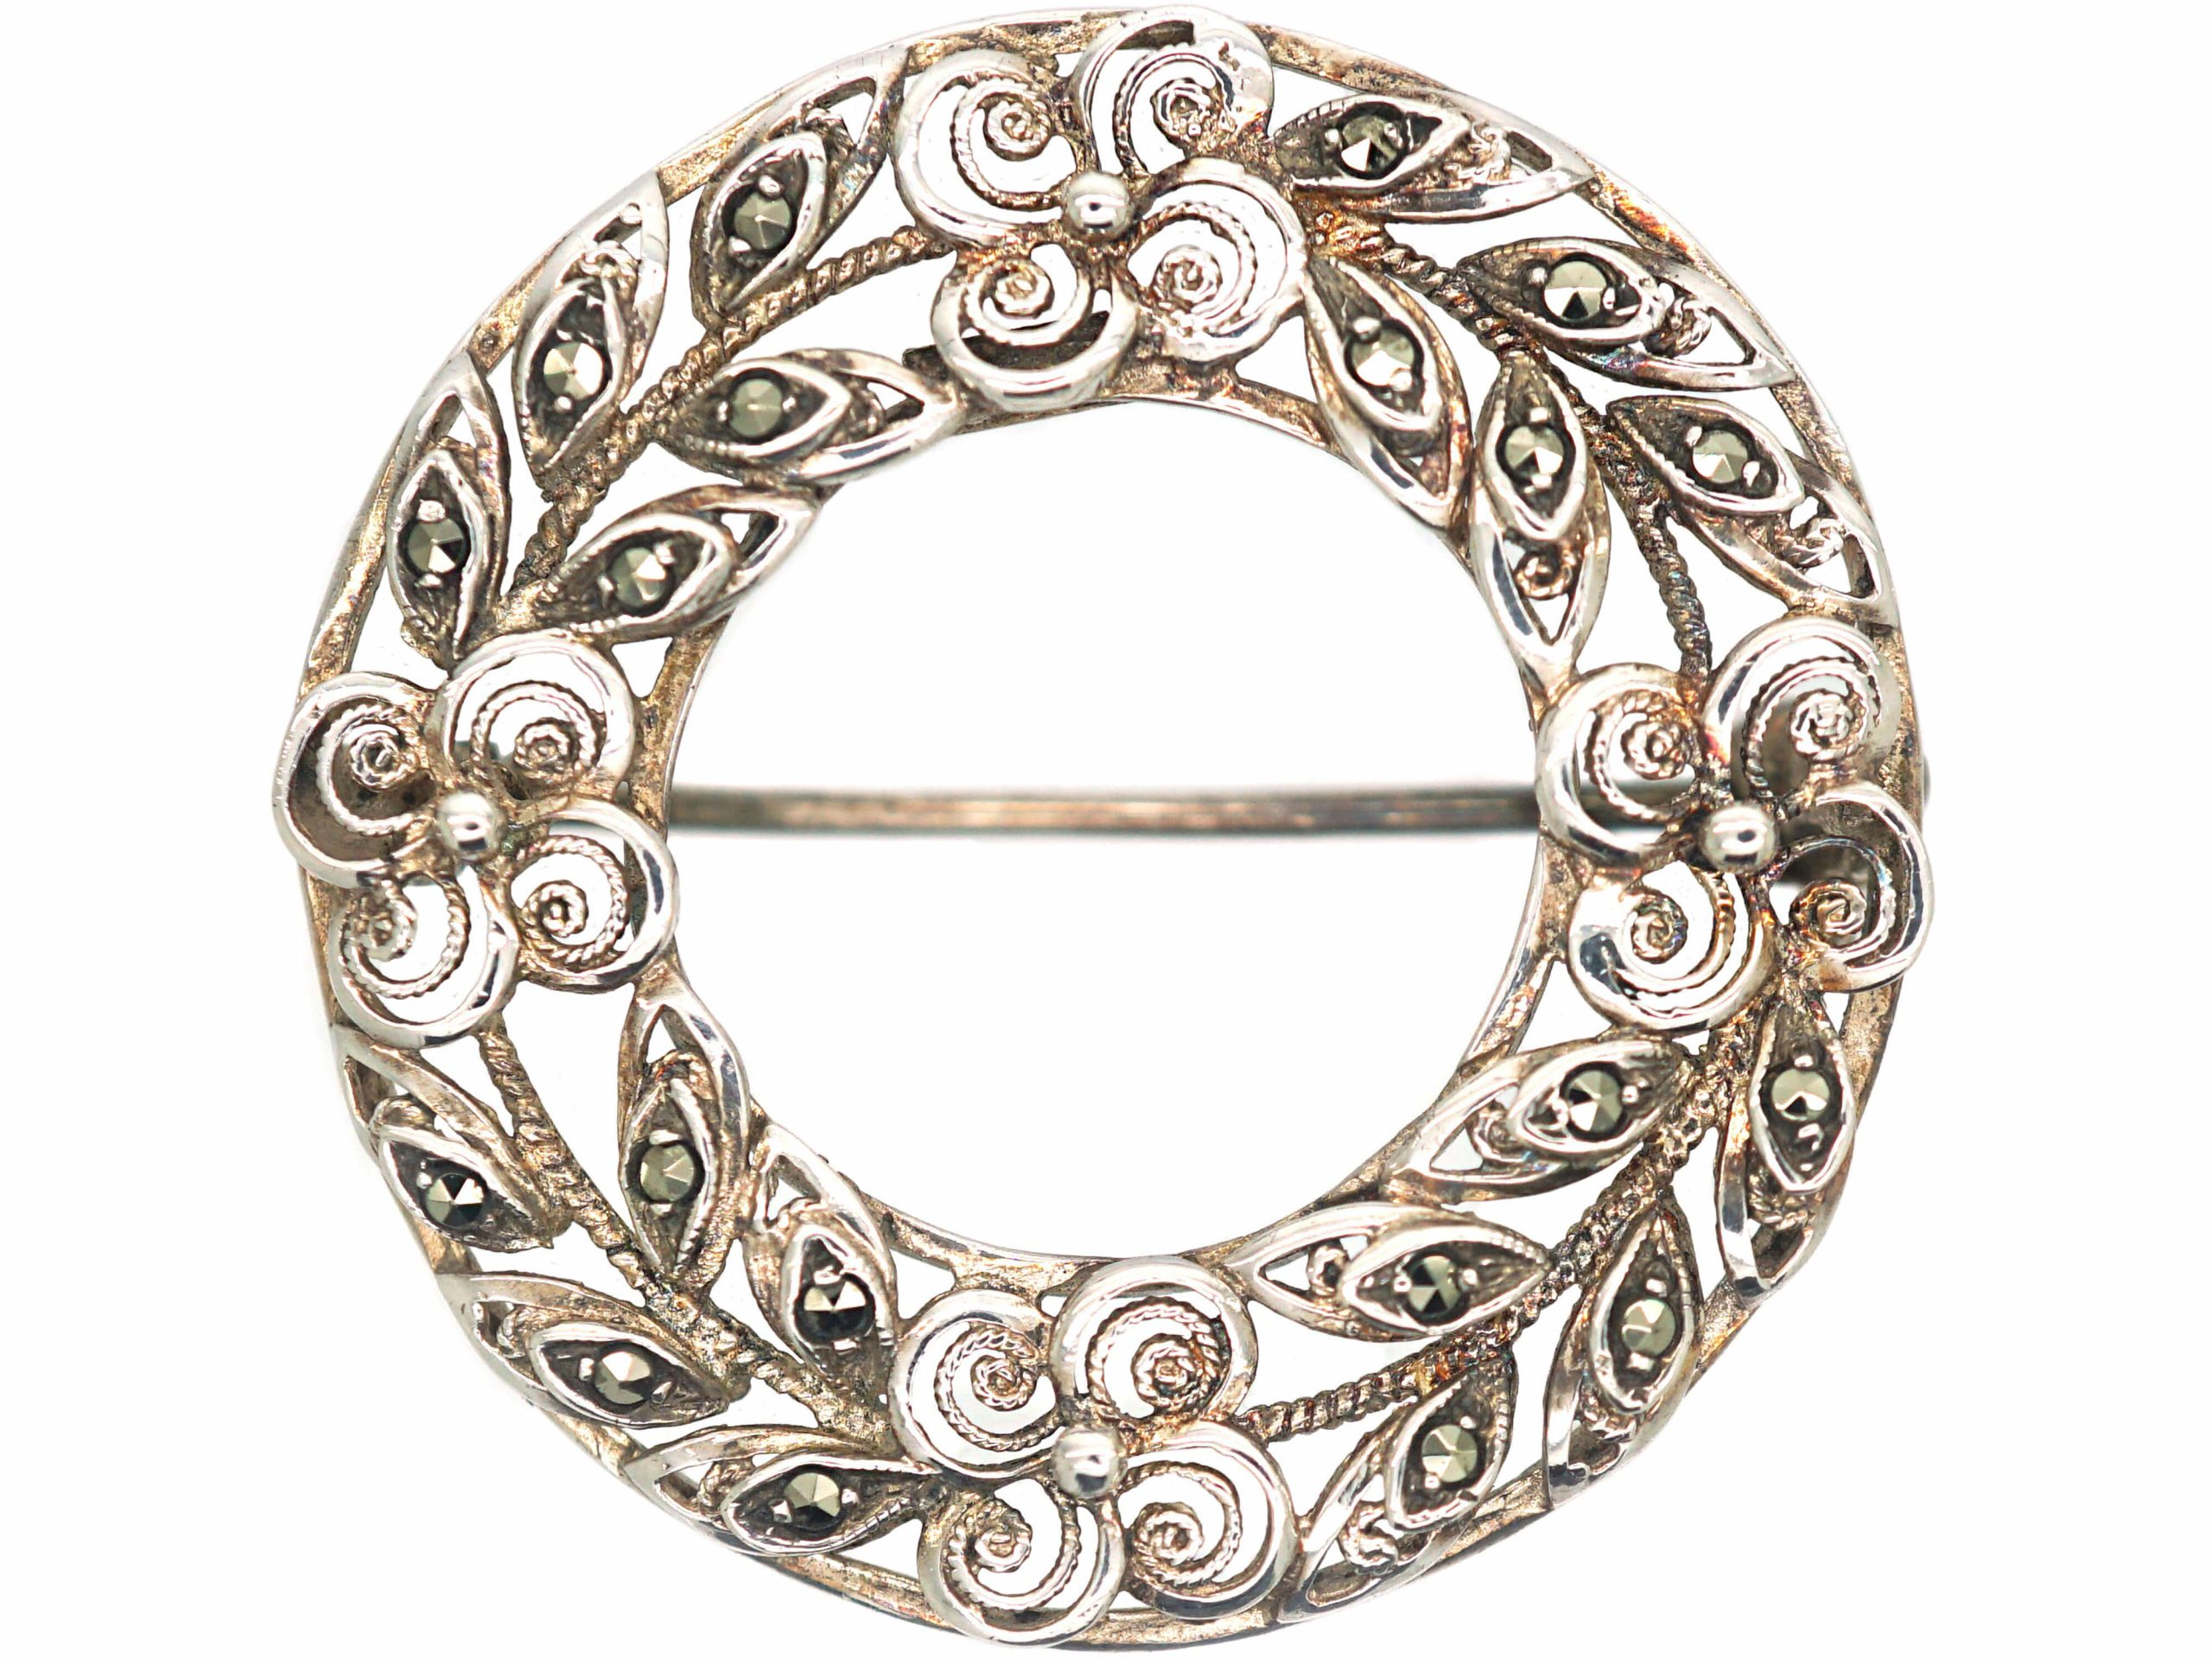 Silver & Marcasite Wreath Brooch with Flowers Motif